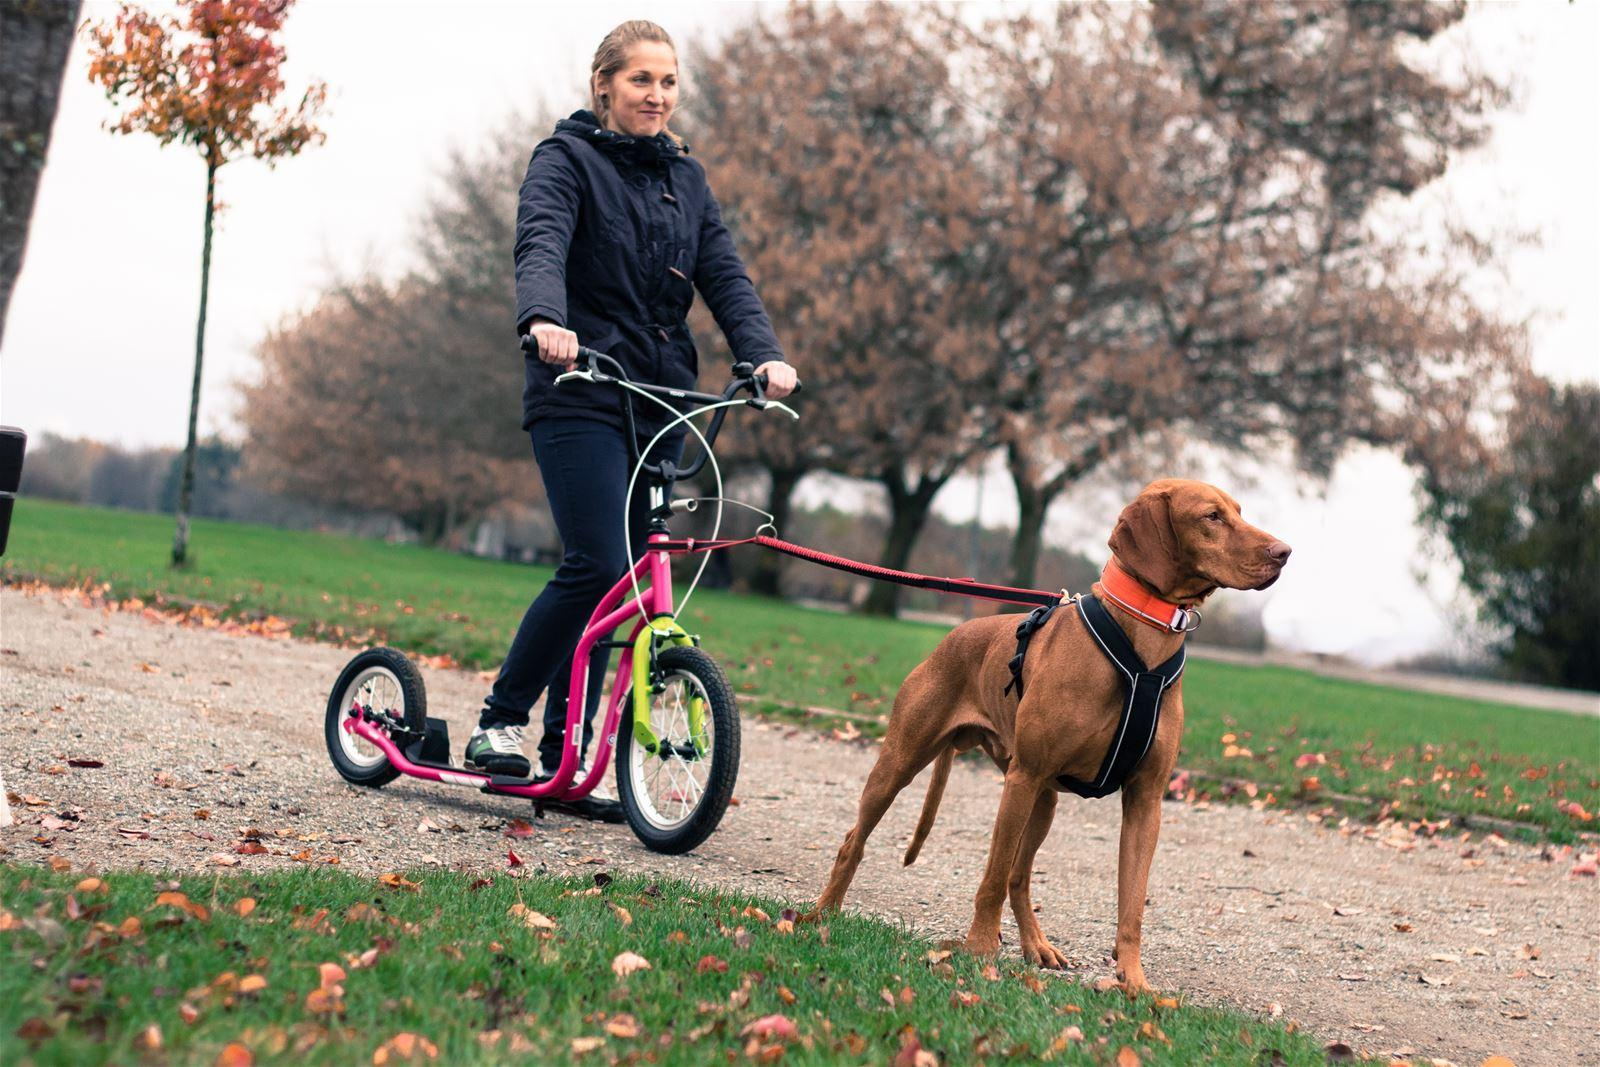 Yedoo new City mit Bikeantenne als Dogscooter